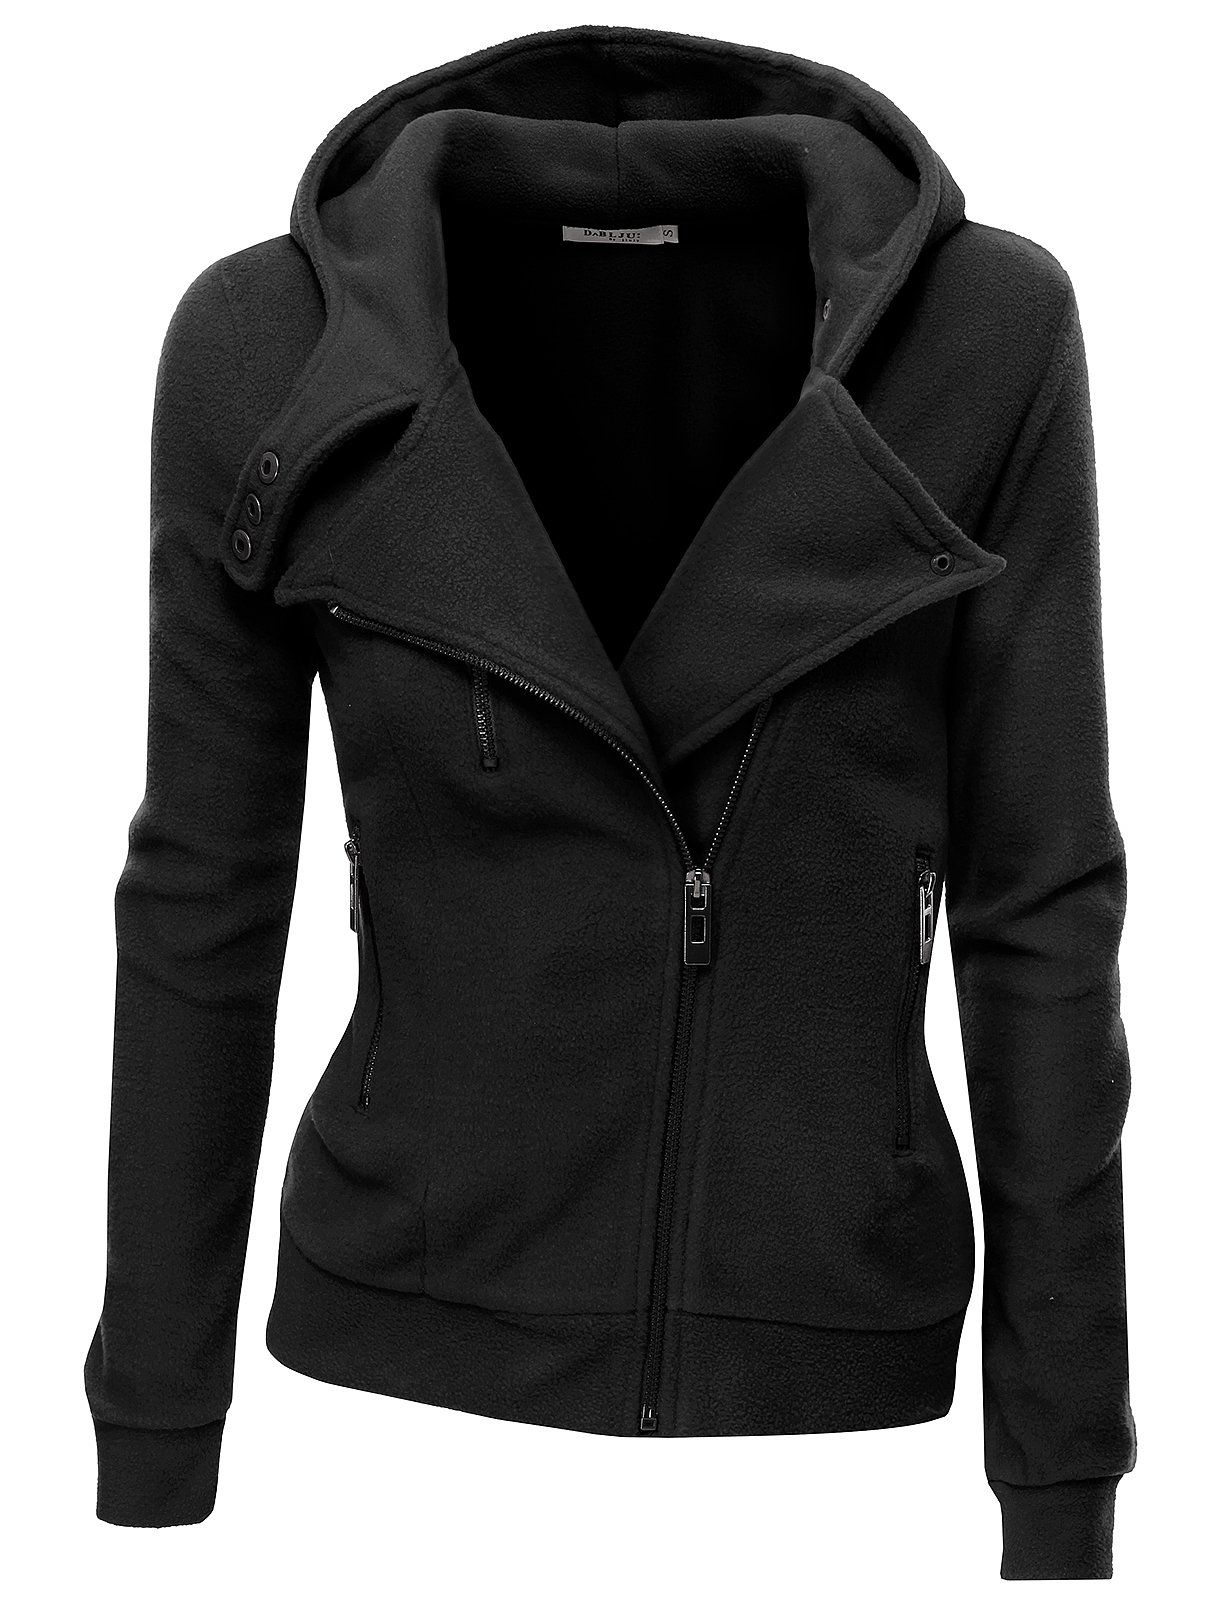 Doublju womenus fleece zipup high neck jacket at amazon womenus